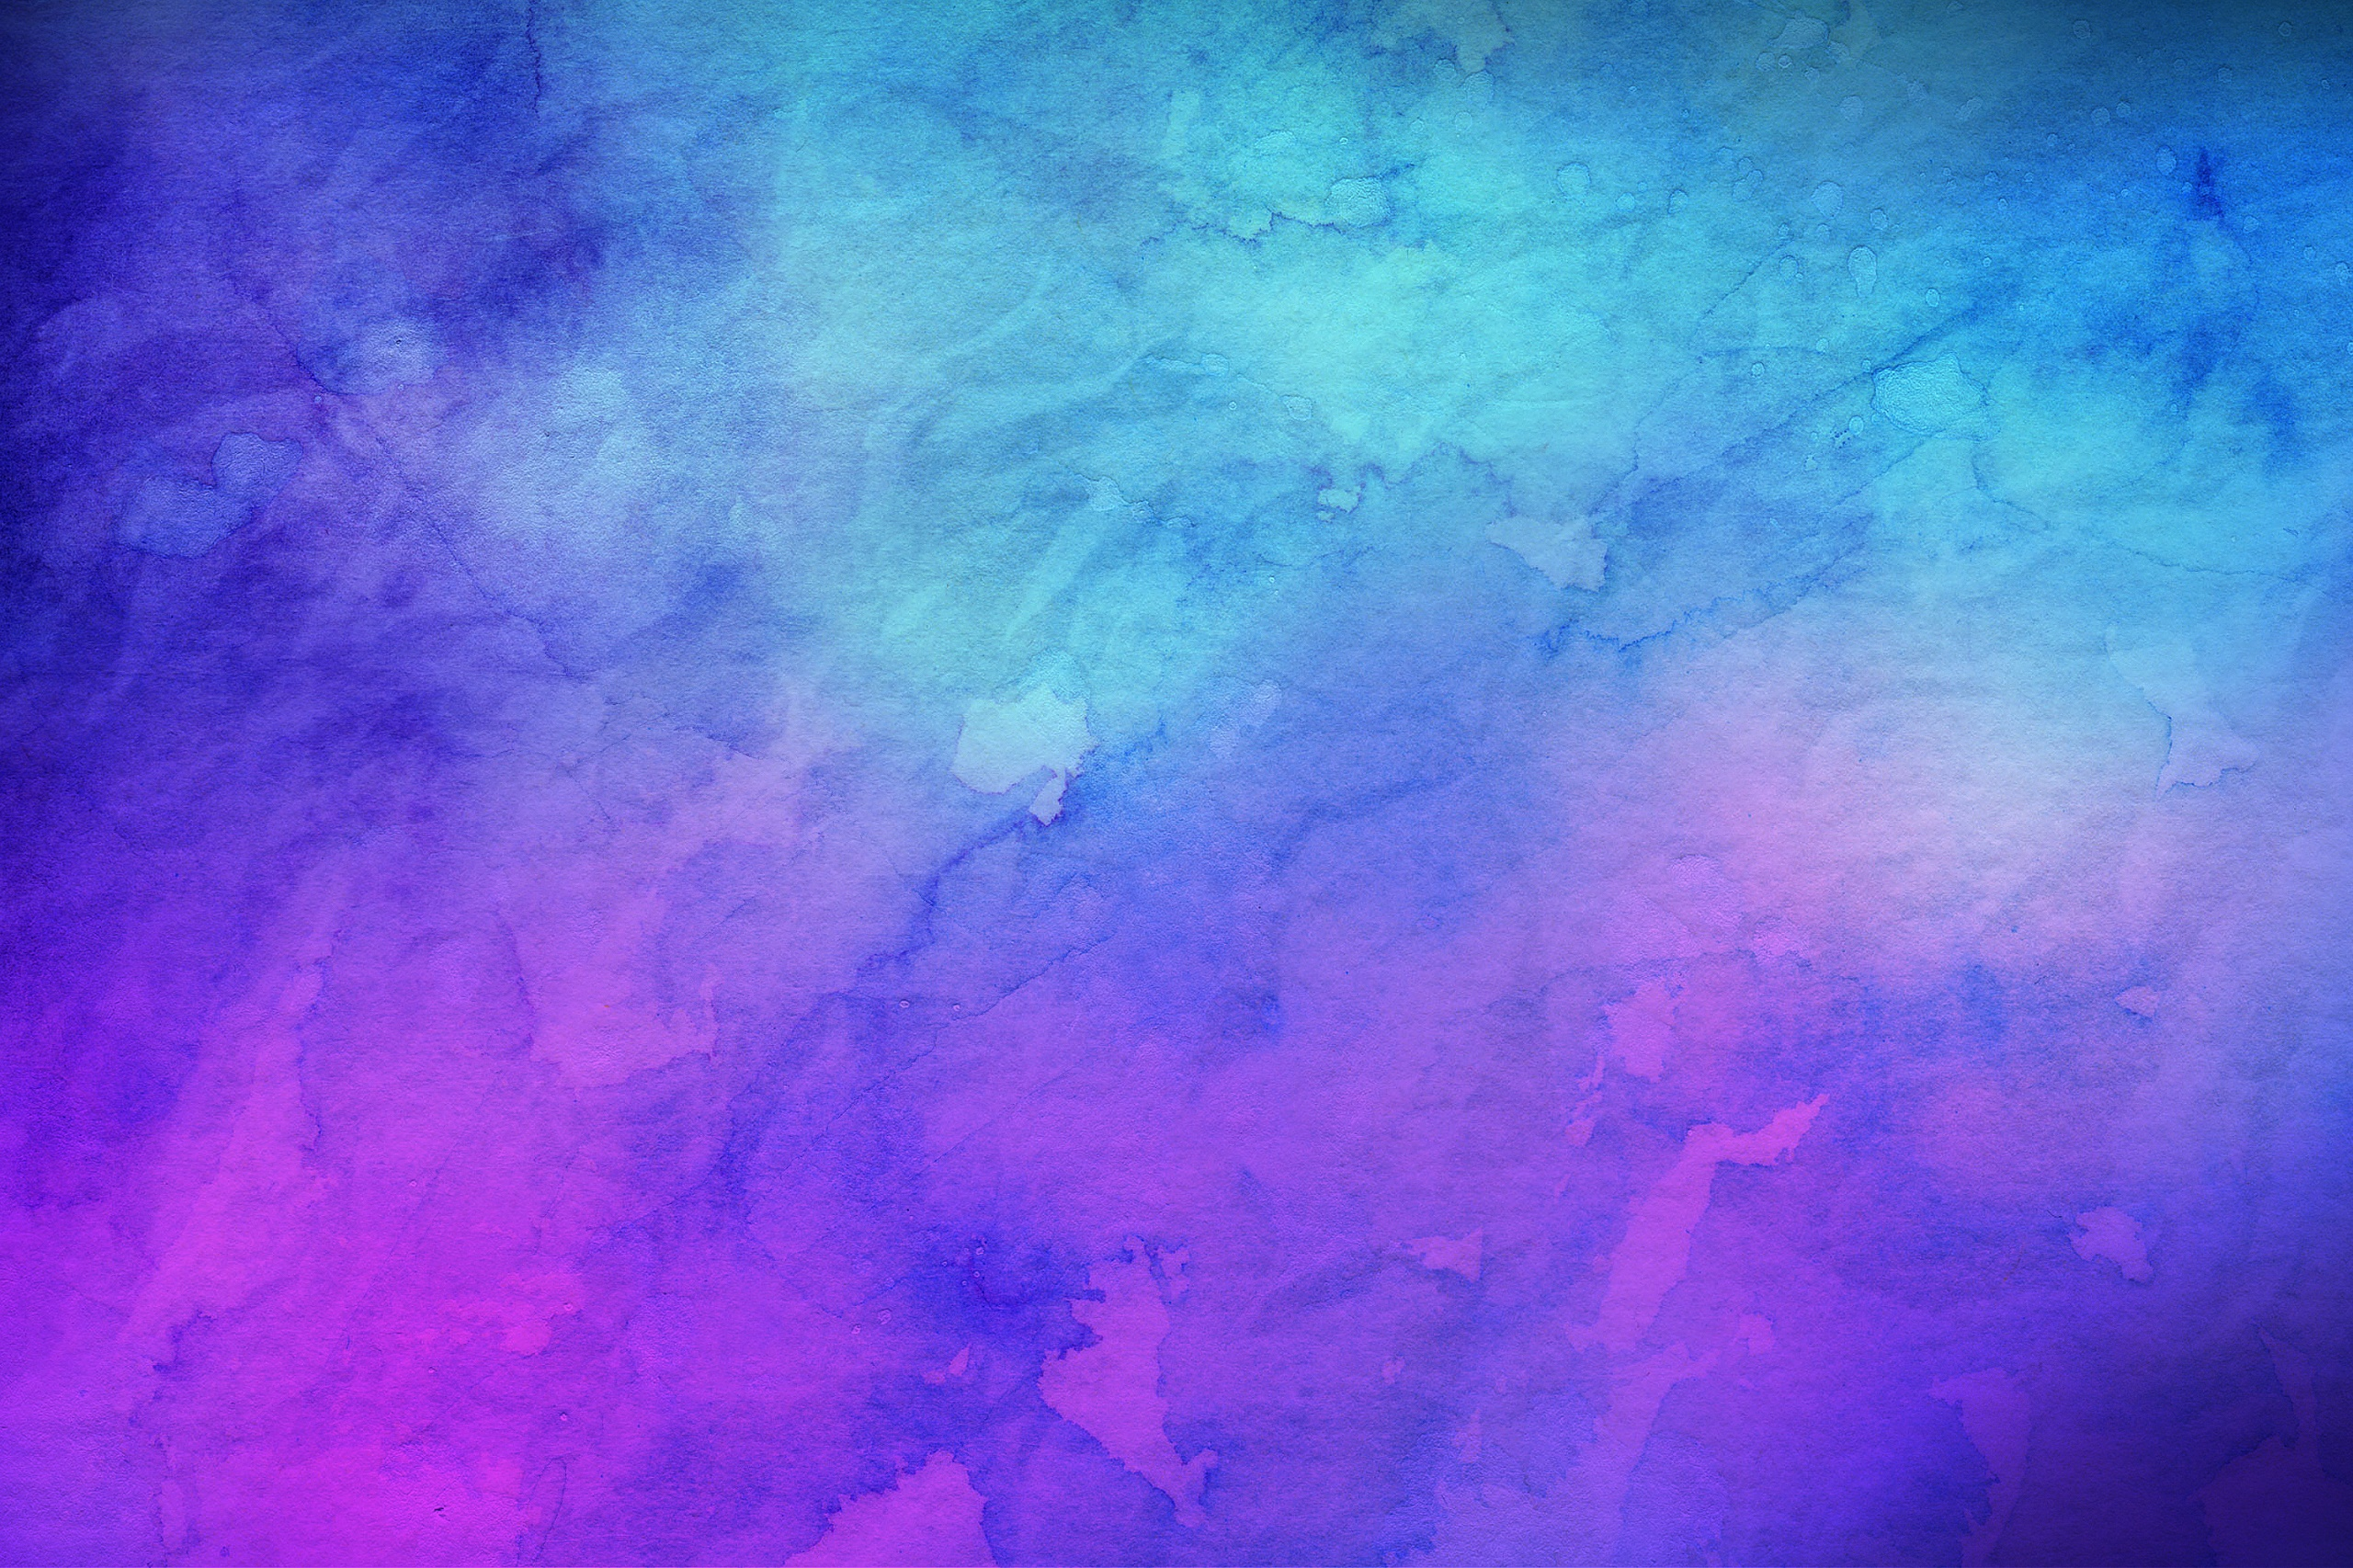 Blue And Purple Watercolor